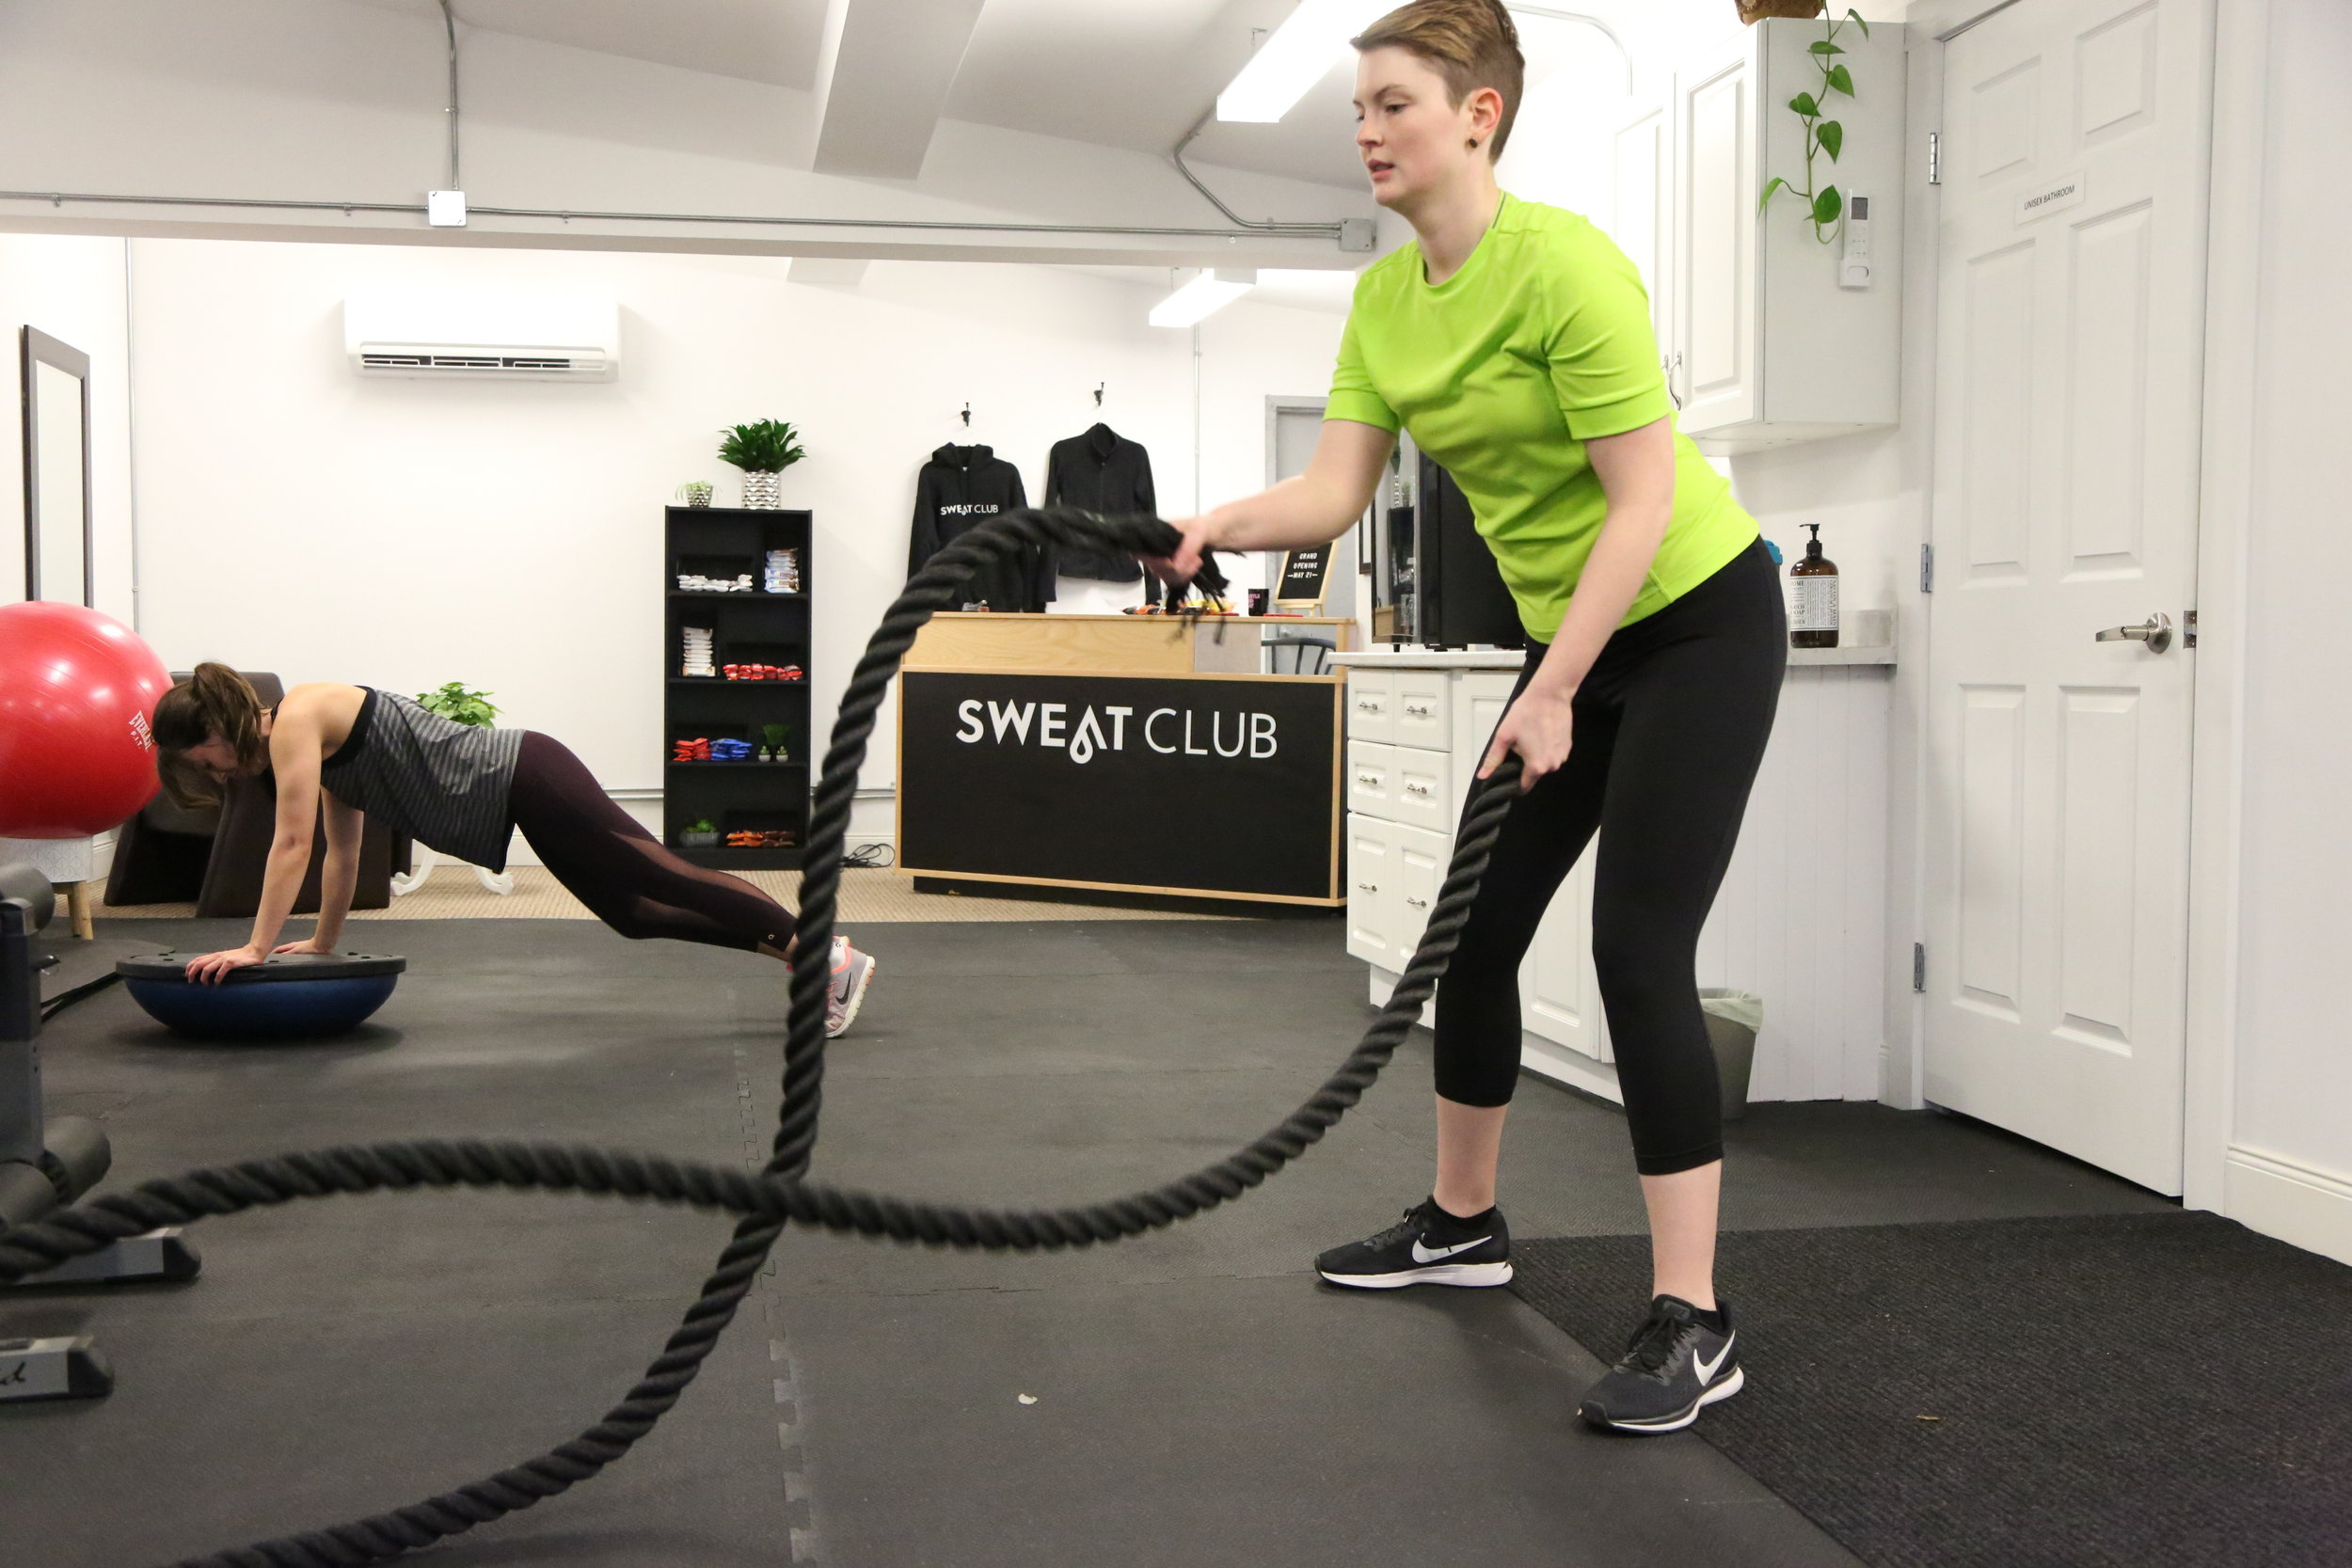 SWEAT + SHRED - The focus of this class is cardio and core but be ready for full body movements. Get ready to sweat in this circuit style class. 45 minutes at lunch and 55 minutes in the evenings. All levels welcome.